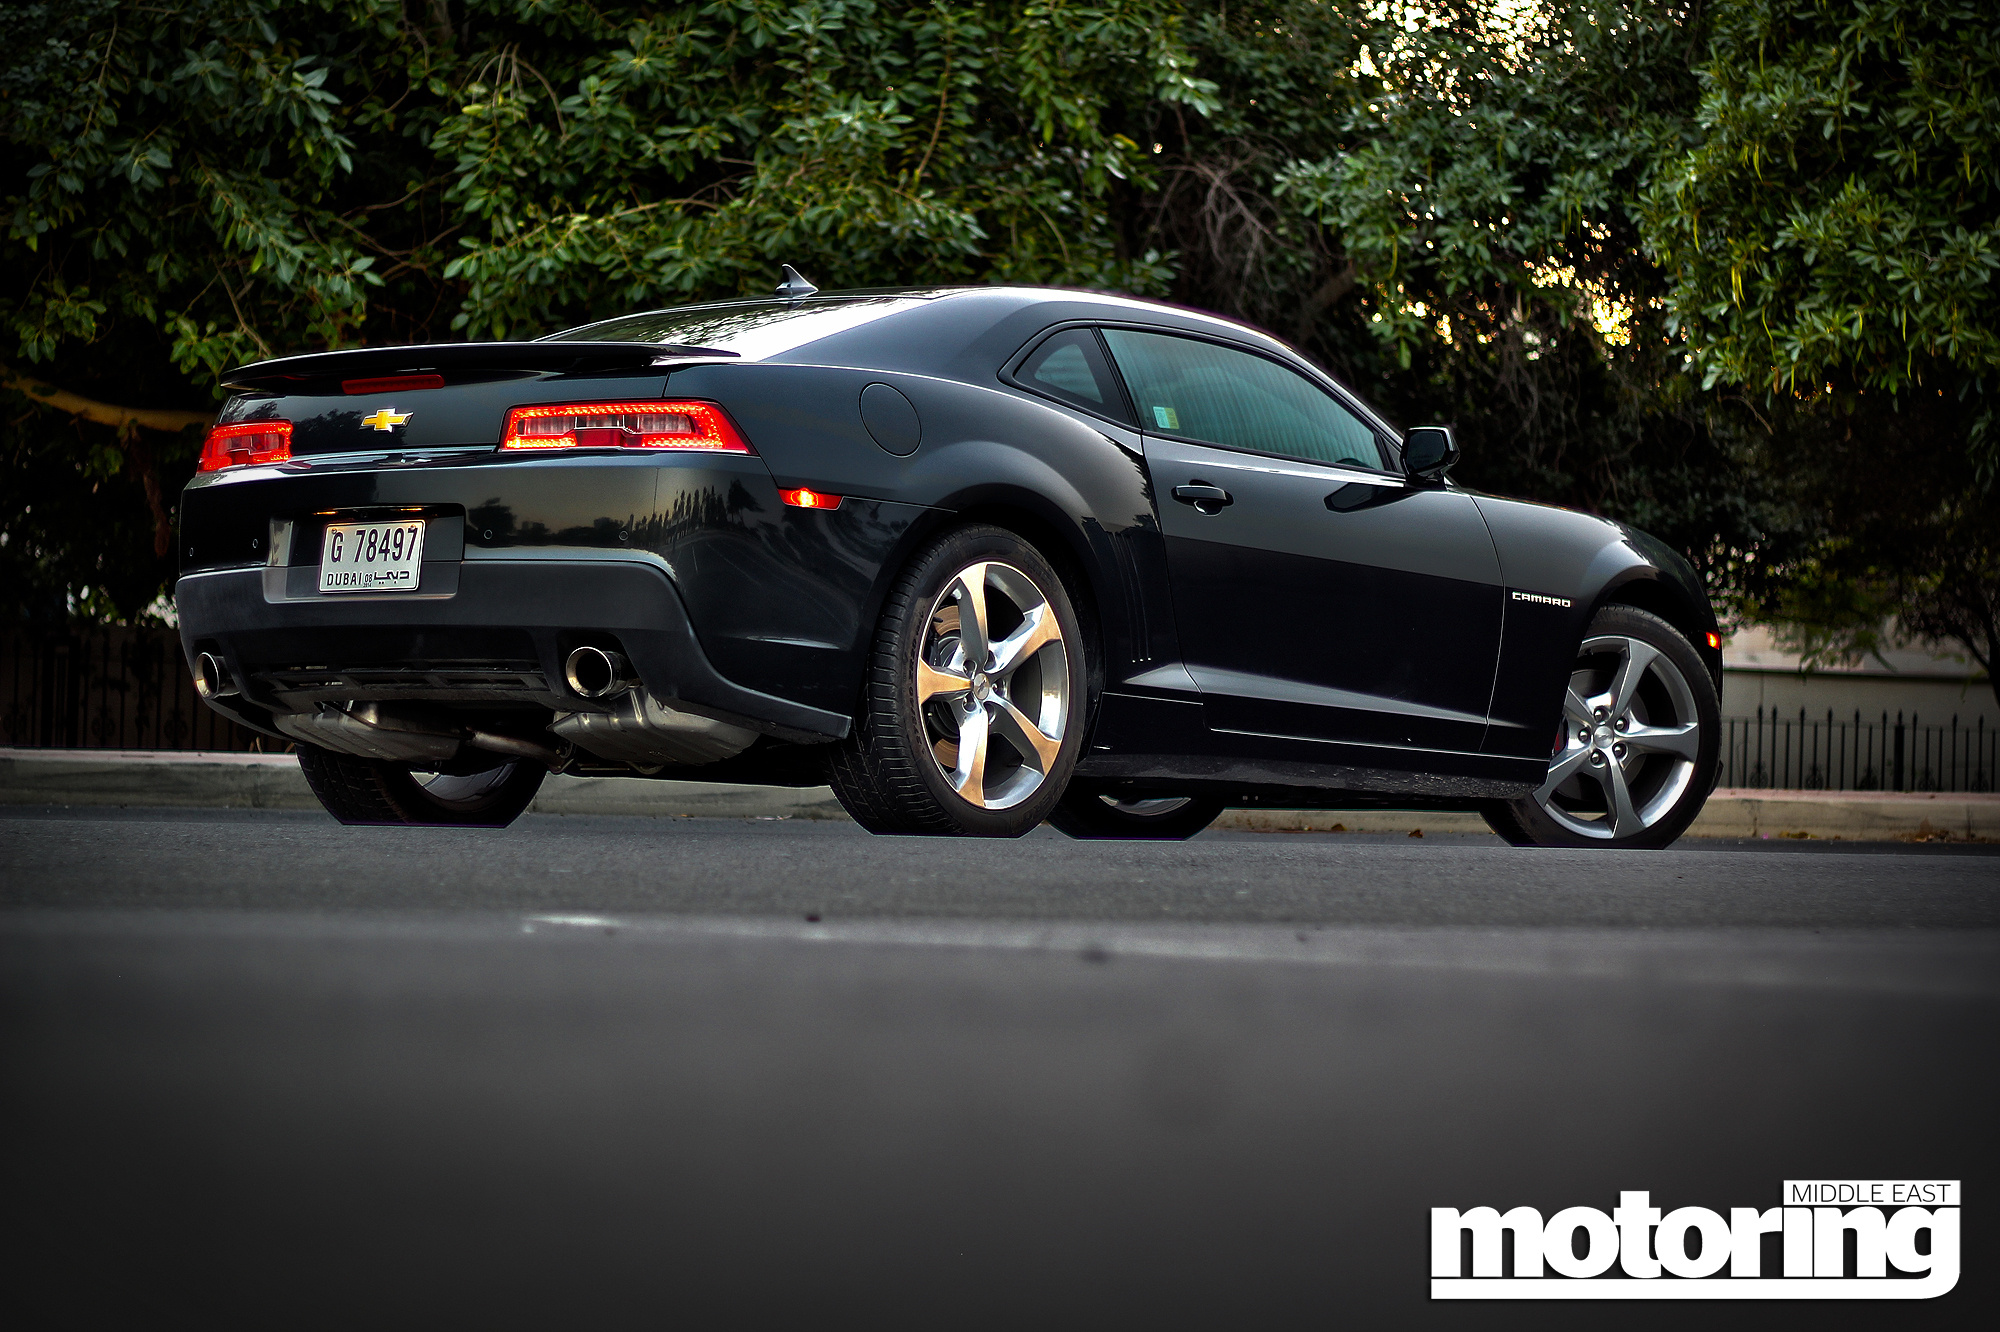 2014 chevrolet camaro ss review motoring middle east car news reviews and buying. Black Bedroom Furniture Sets. Home Design Ideas